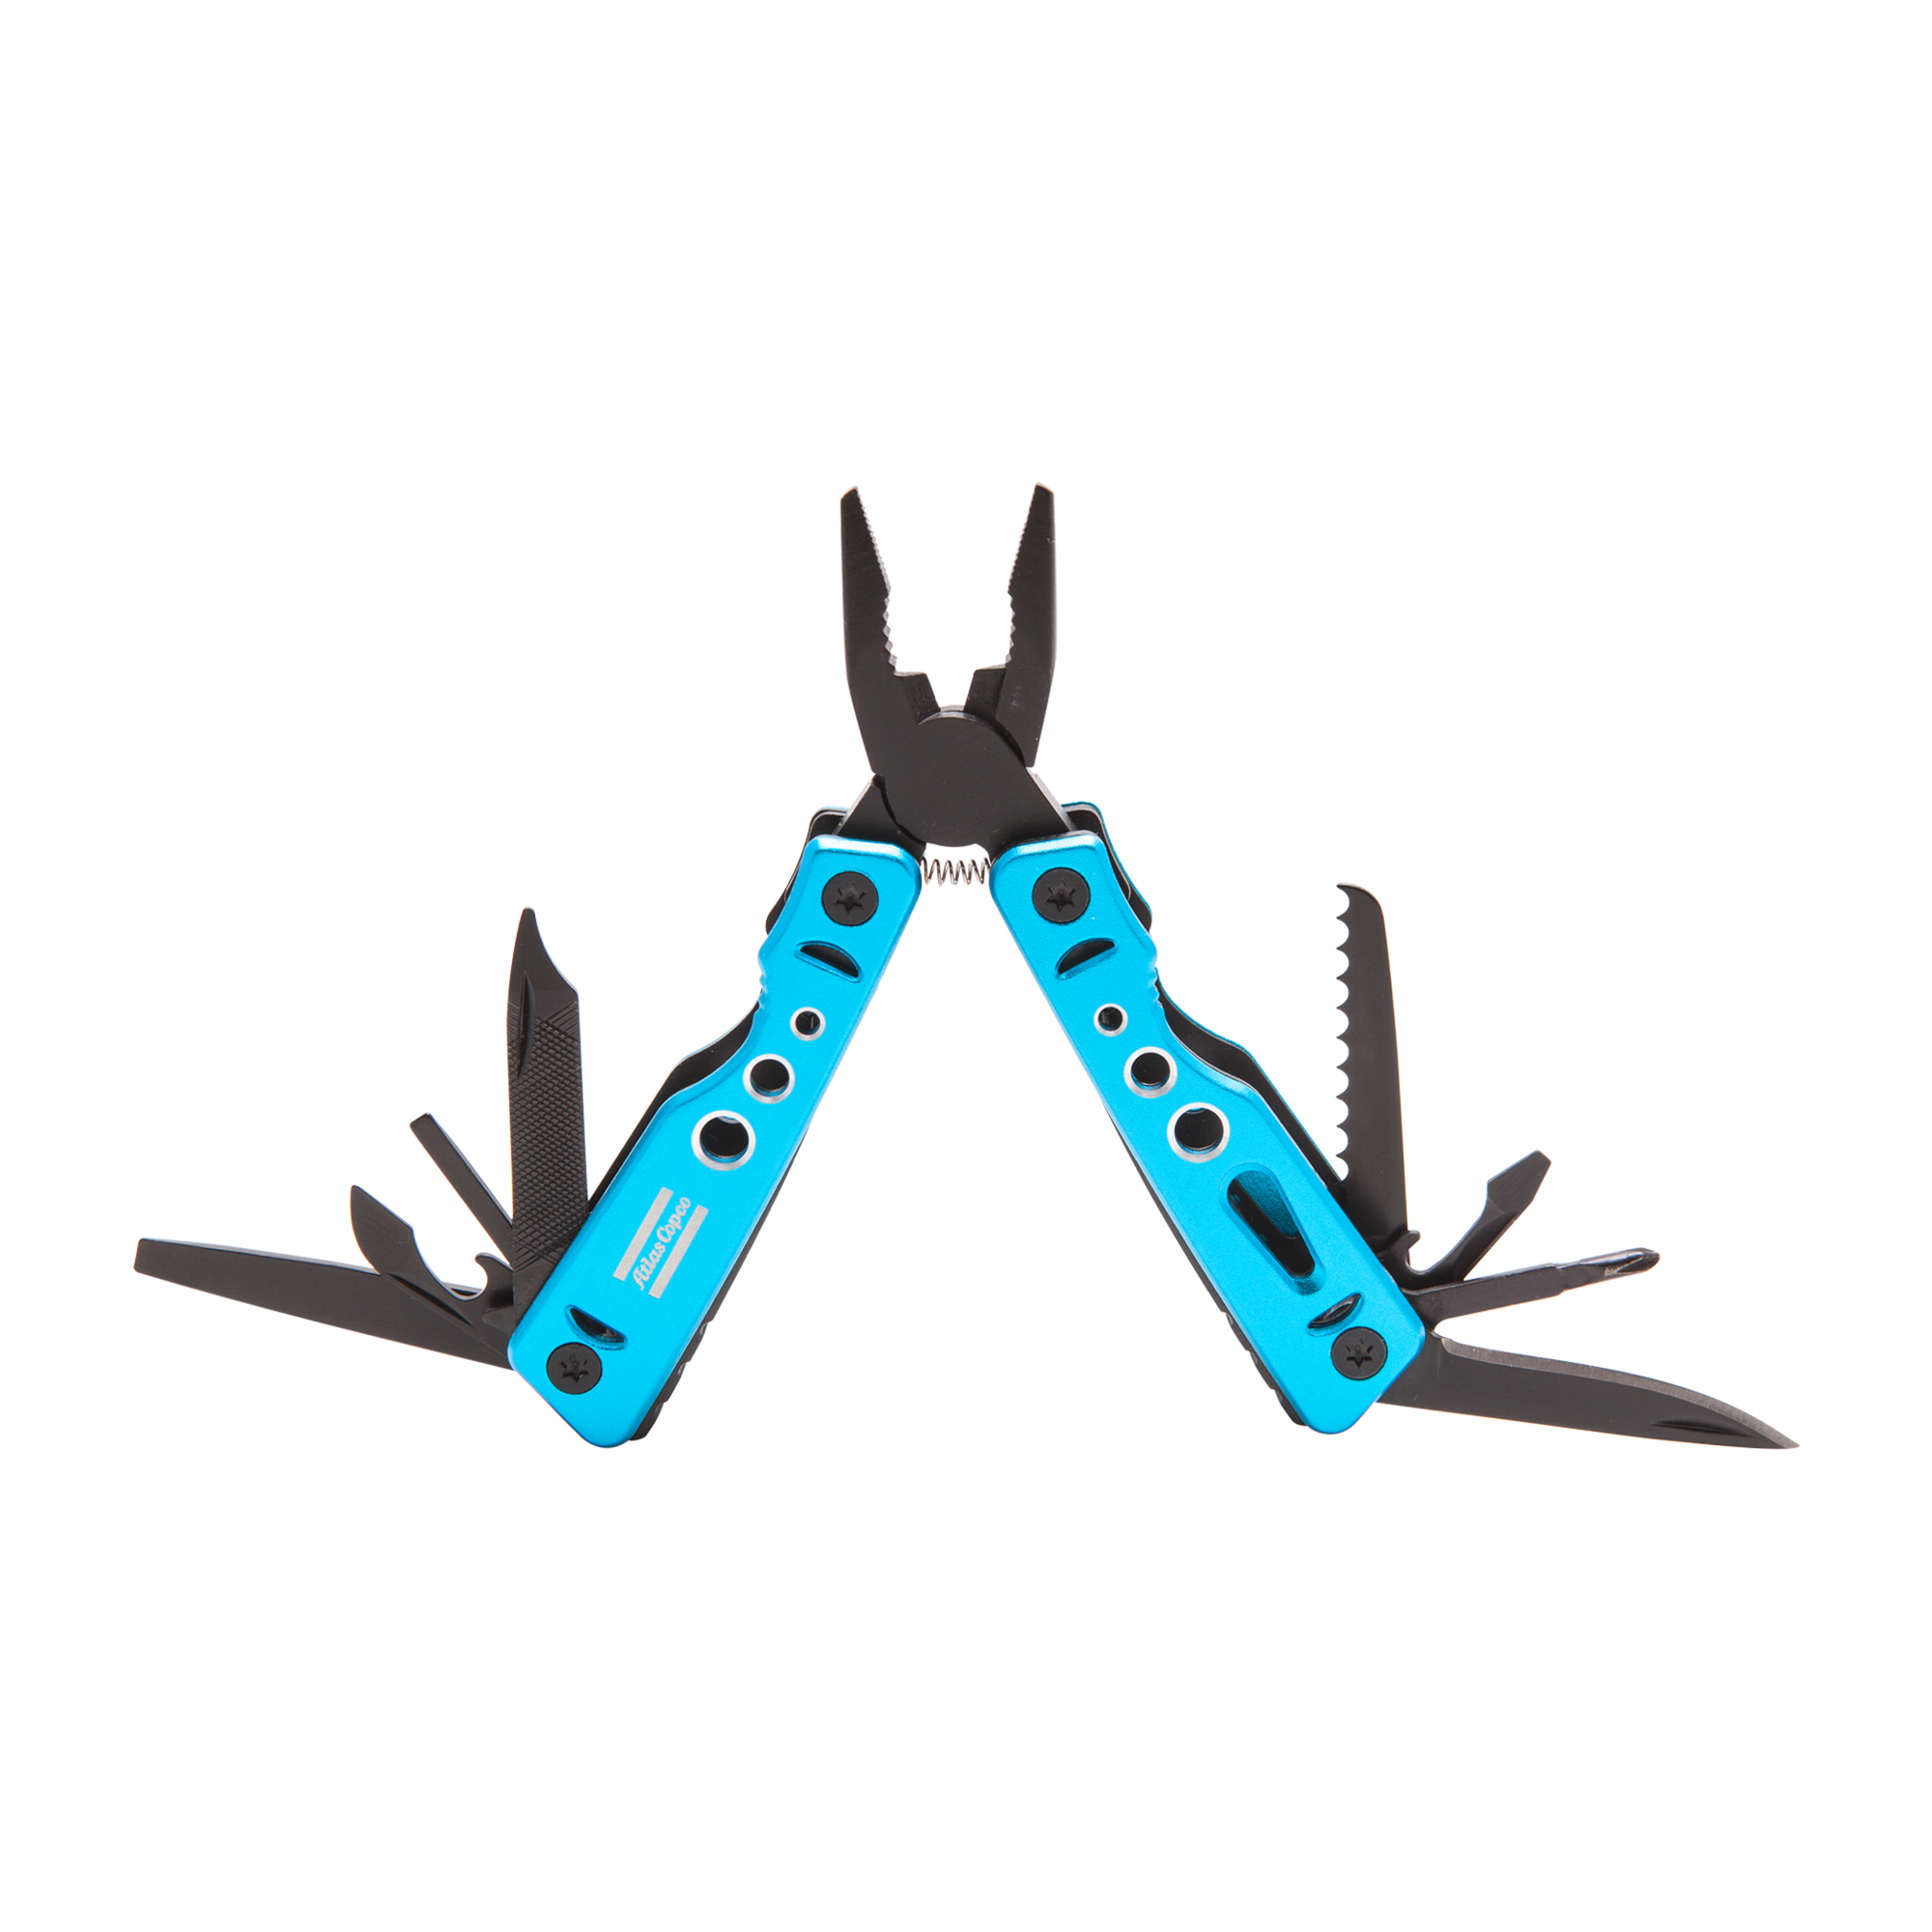 A small and effective multitool. Great to have in minor emergencies.